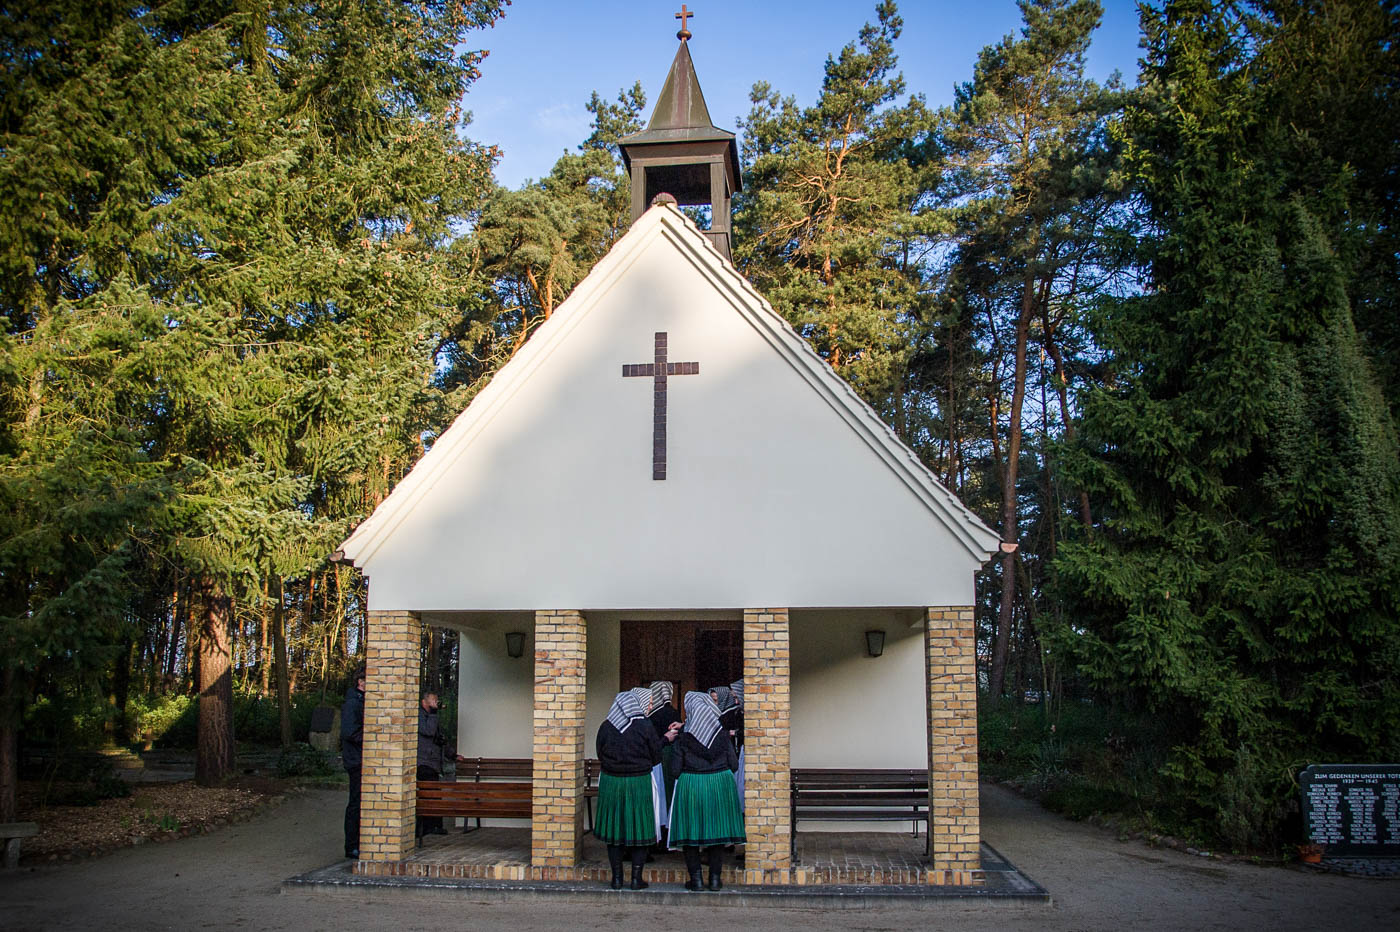 Morgenandacht in der Friedhofskapelle Rohne am 5. April 2015